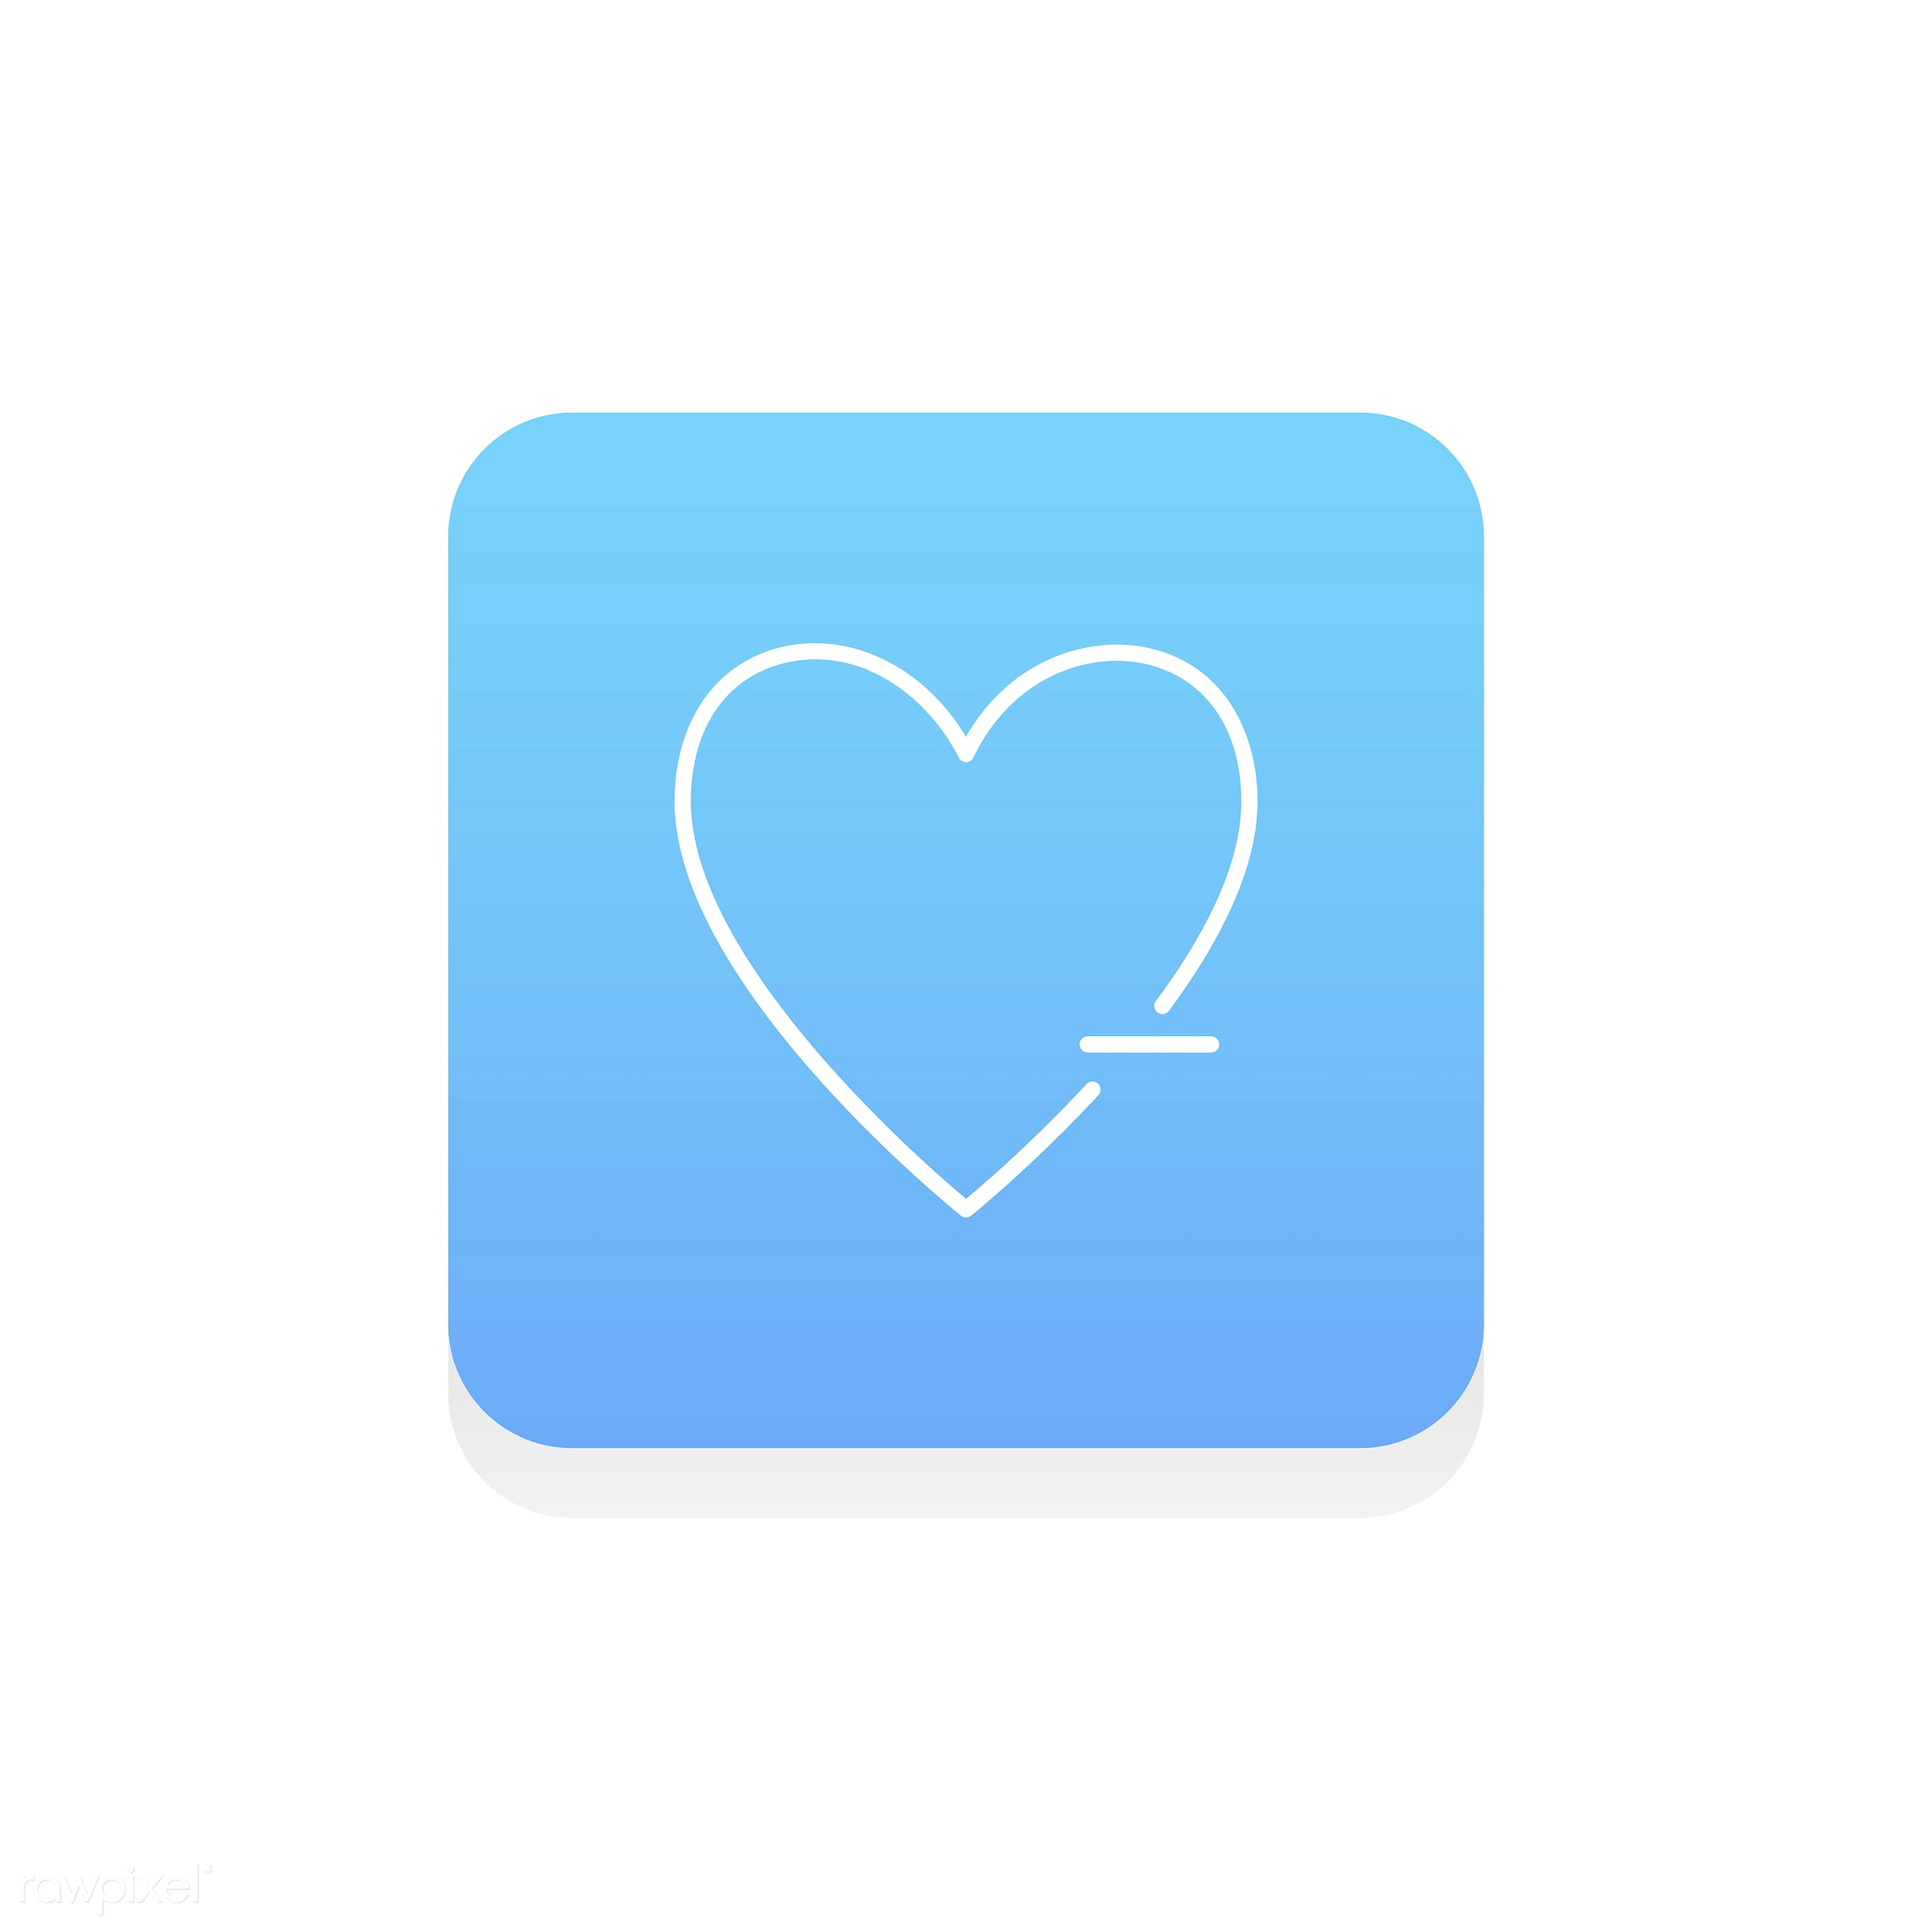 Vector of heart icon - design, emotion, expression, feeling, flat, graphic, heart, icon, illustration, isolated, layout,...